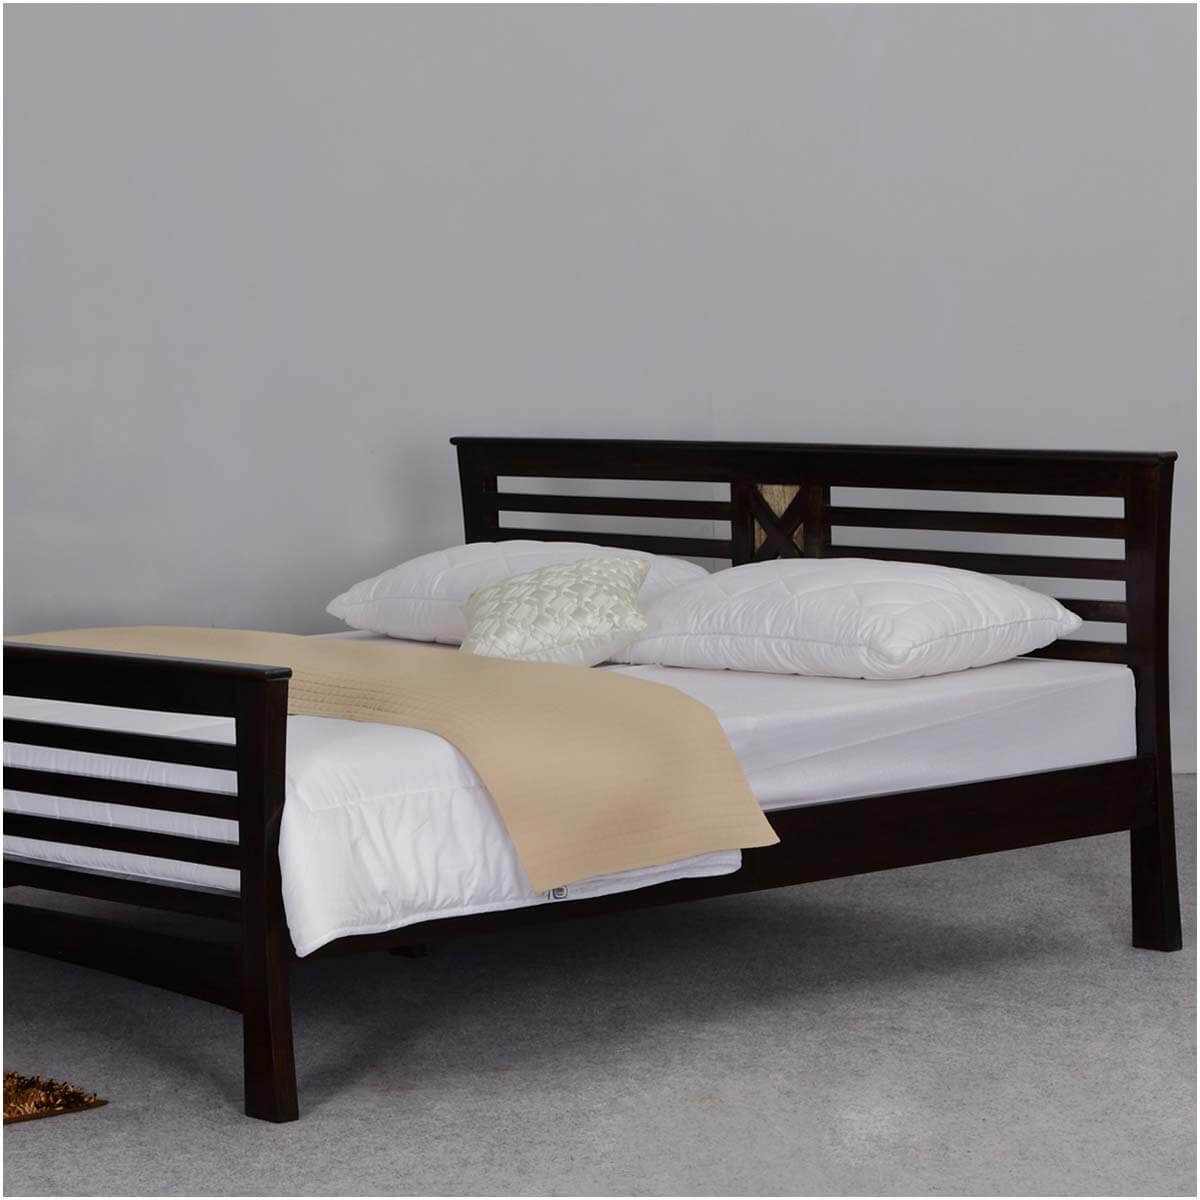 texas solid wood queen size platform bed frame w headboard footboard. Black Bedroom Furniture Sets. Home Design Ideas